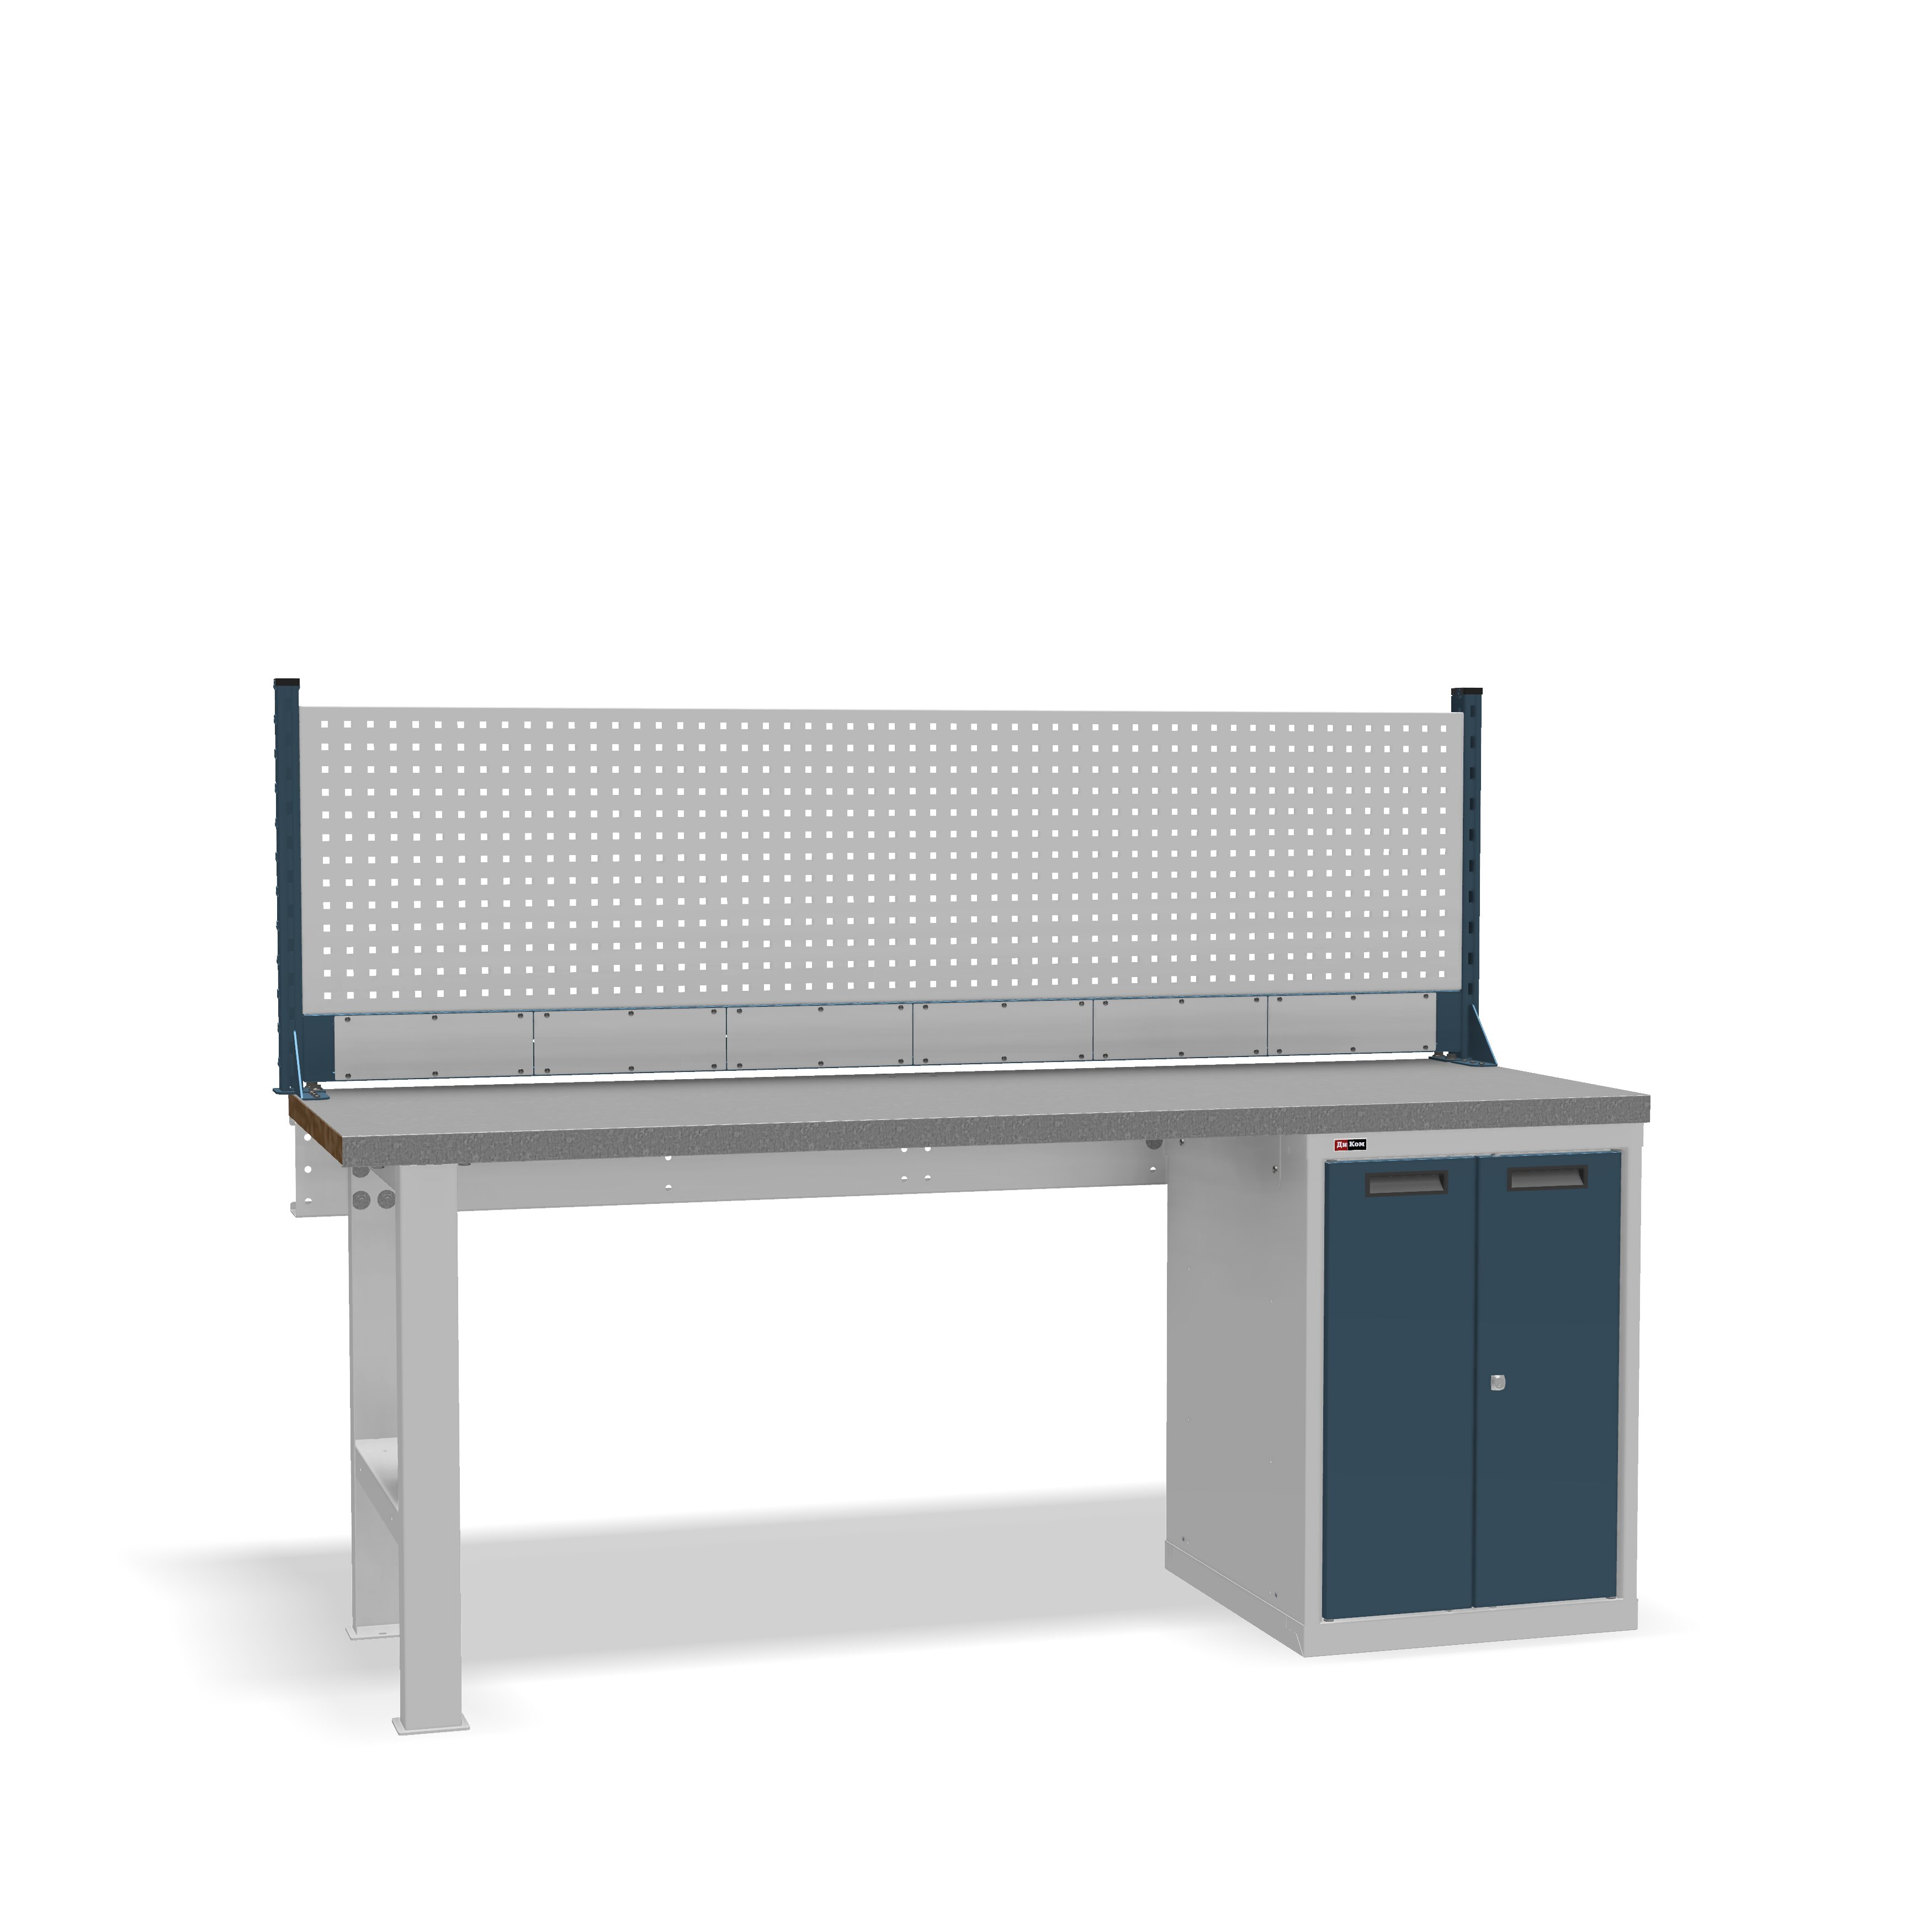 DiKom VS-200-03 Workbench + DiKom Perforated Panel VS-200-E4